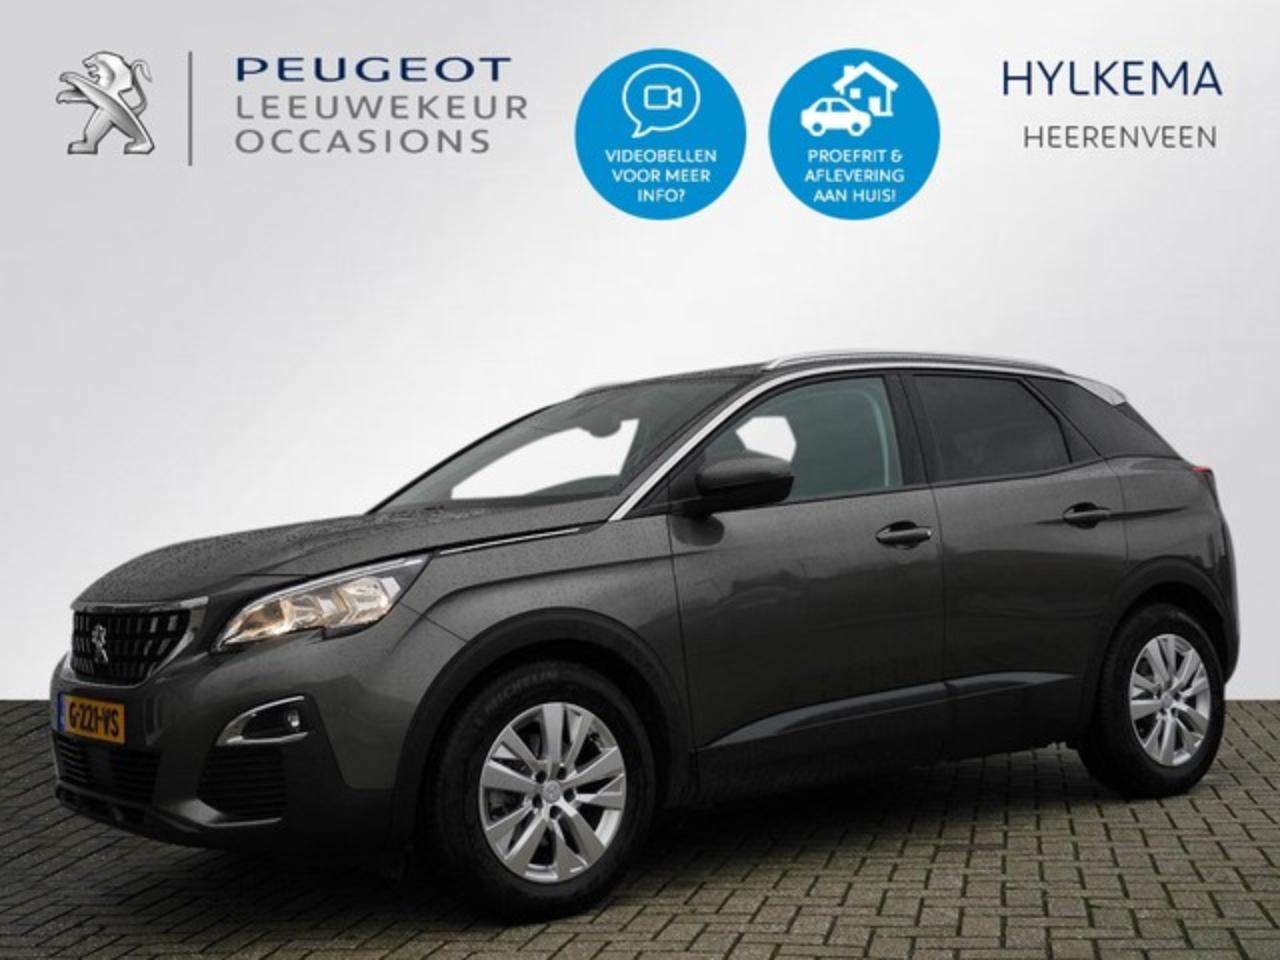 Peugeot 3008 Executive 1.5 BlueHDi 130pk | Navi | Clima | Demo